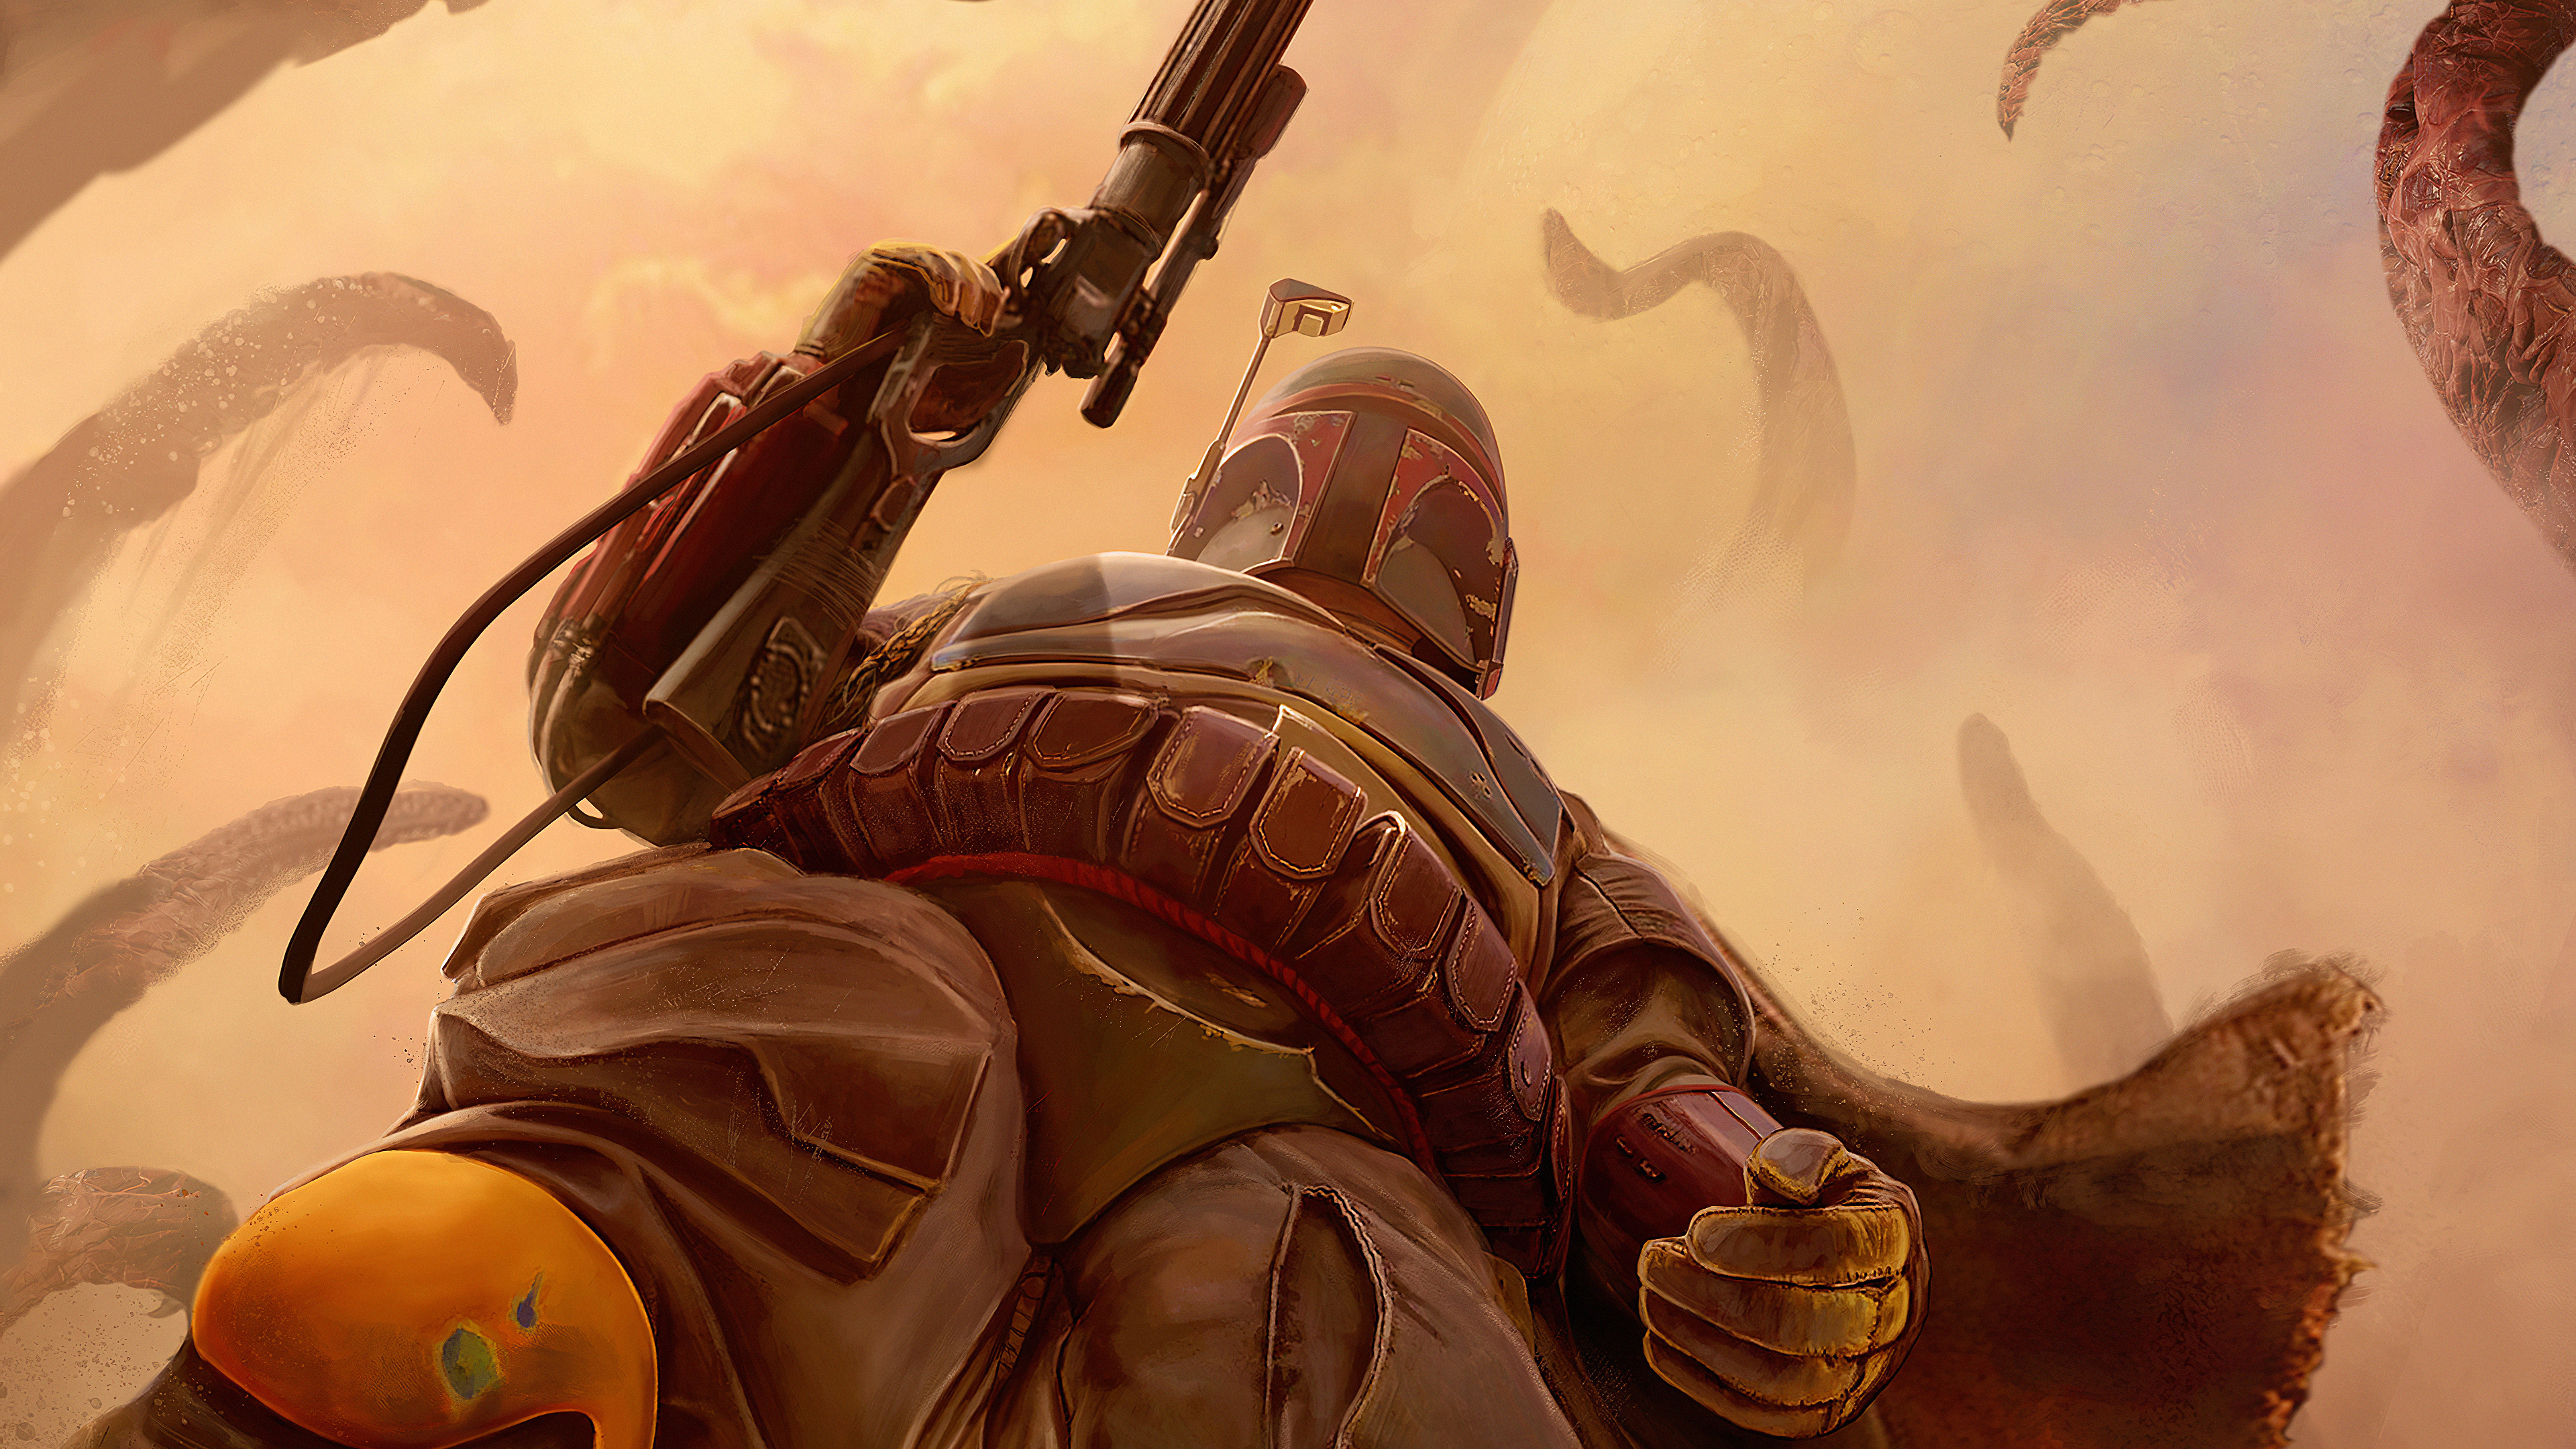 Wallpaper 4k The Mandalorian Art The Mandalorian 4k Wallpaper The Mandalorian Wallpaper